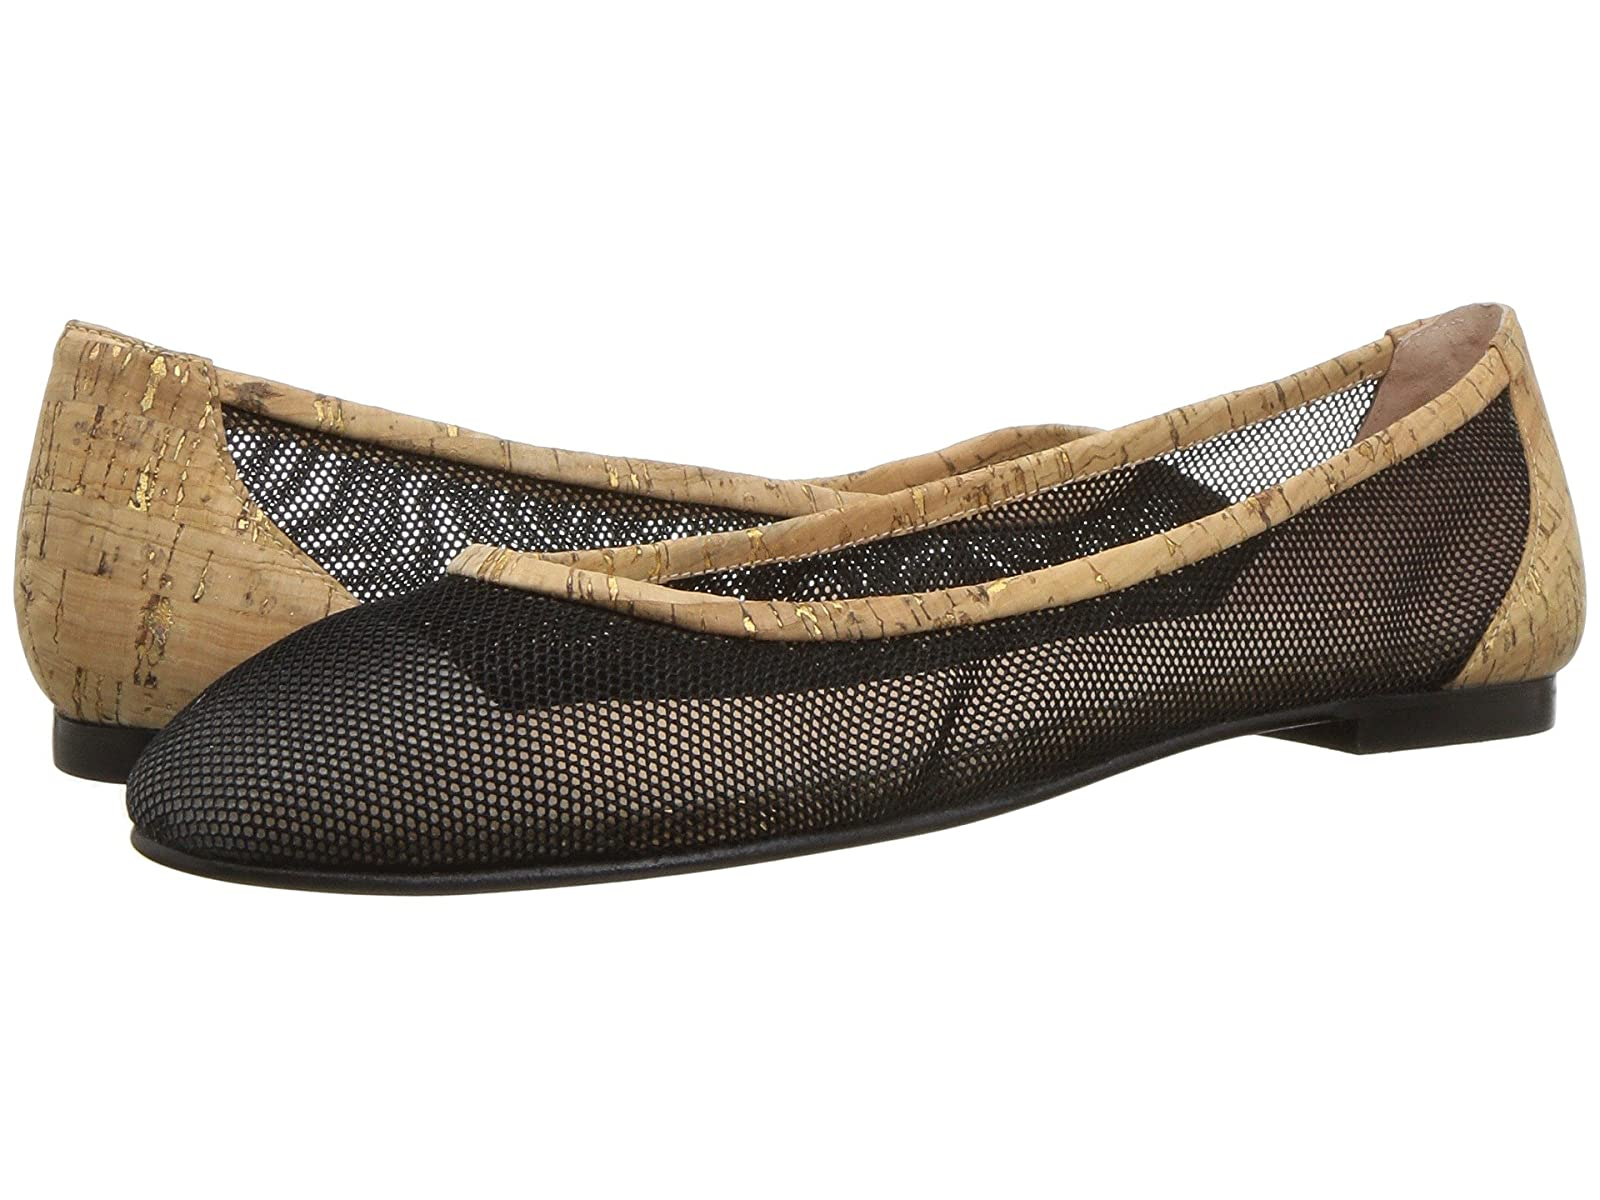 French Sole BravoCheap and distinctive eye-catching shoes